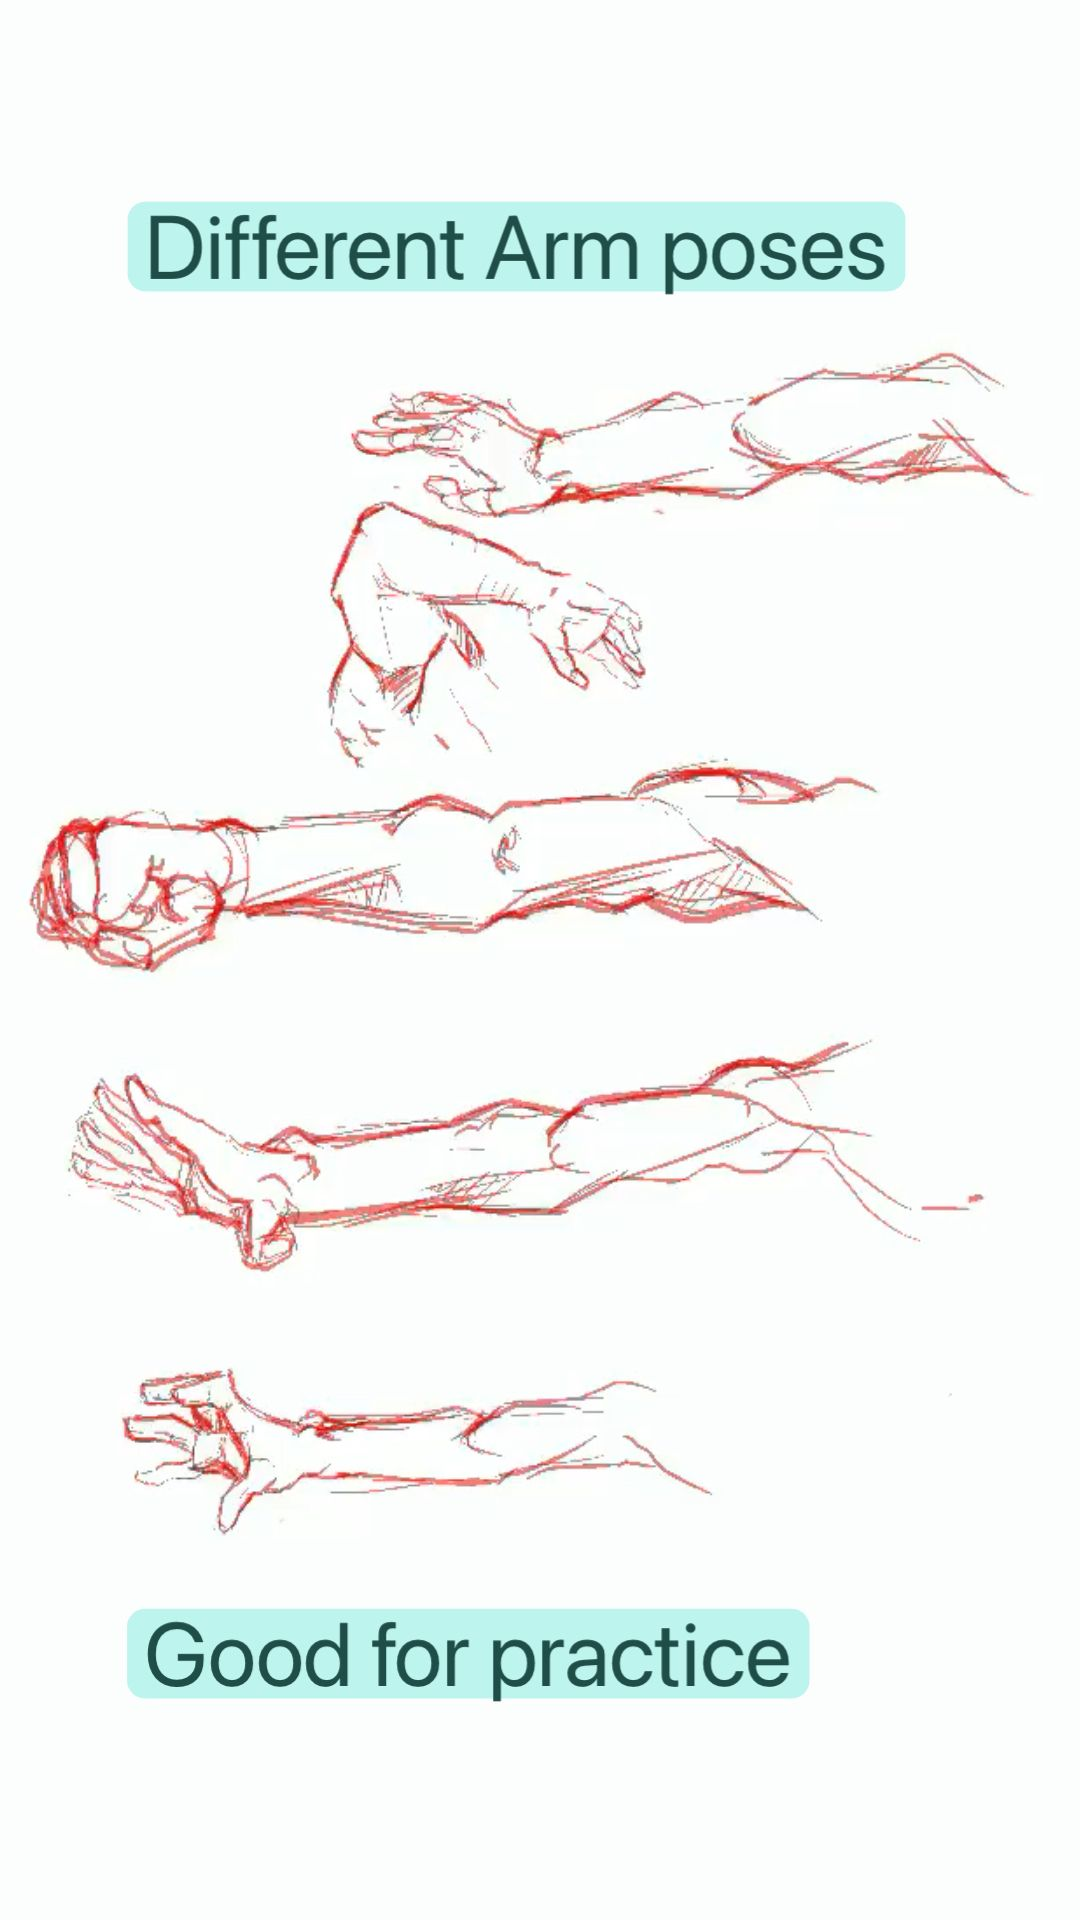 Different Arm poses references